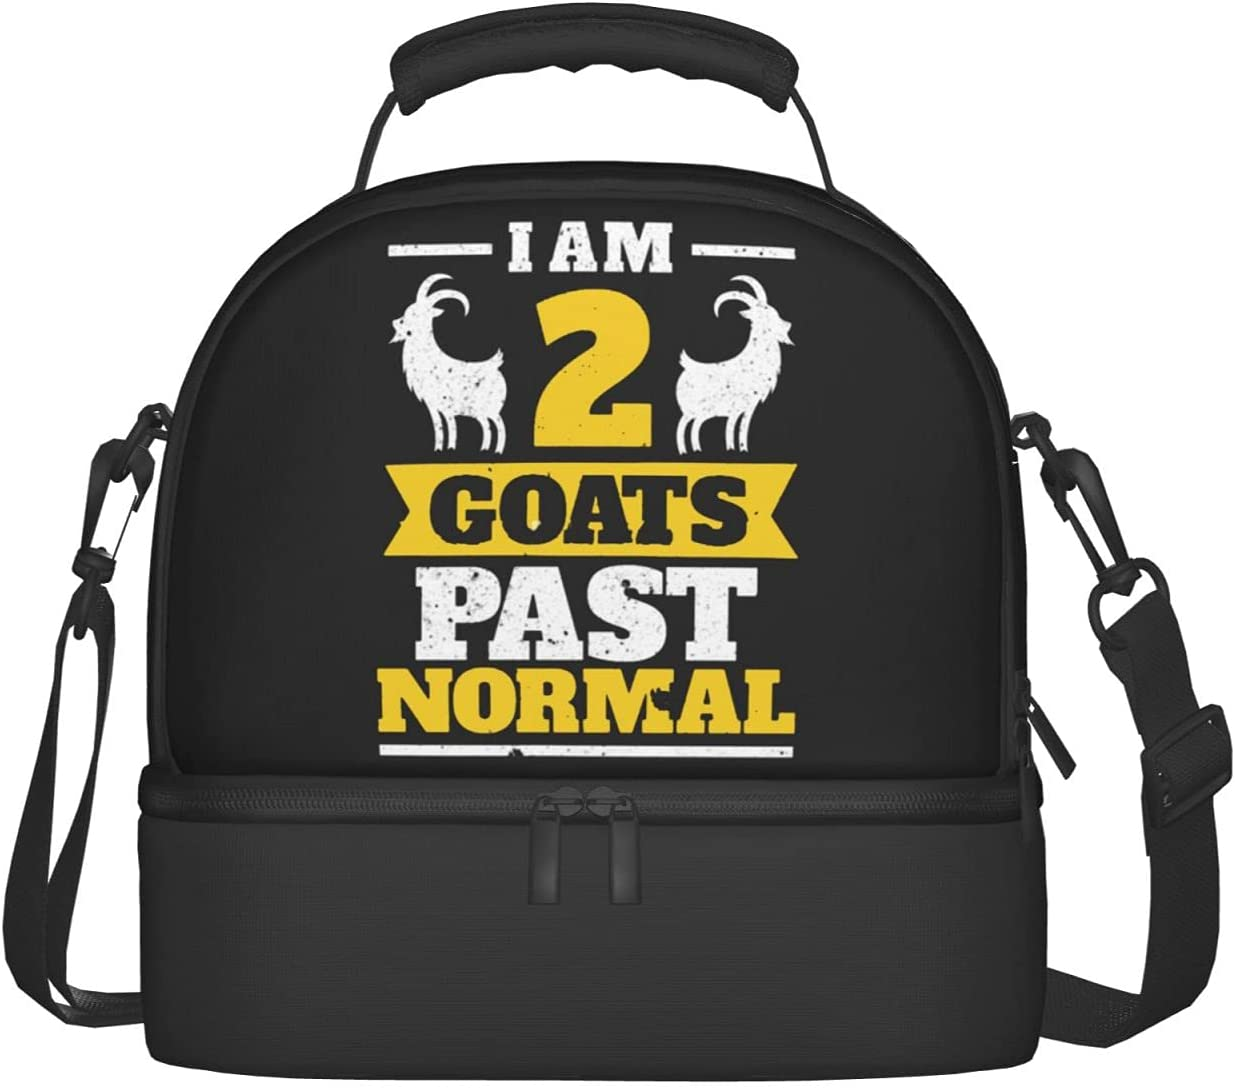 I Am List price 2 Goats Past Normal Two Goat Regular dealer Bags Insula Compartments Lunch